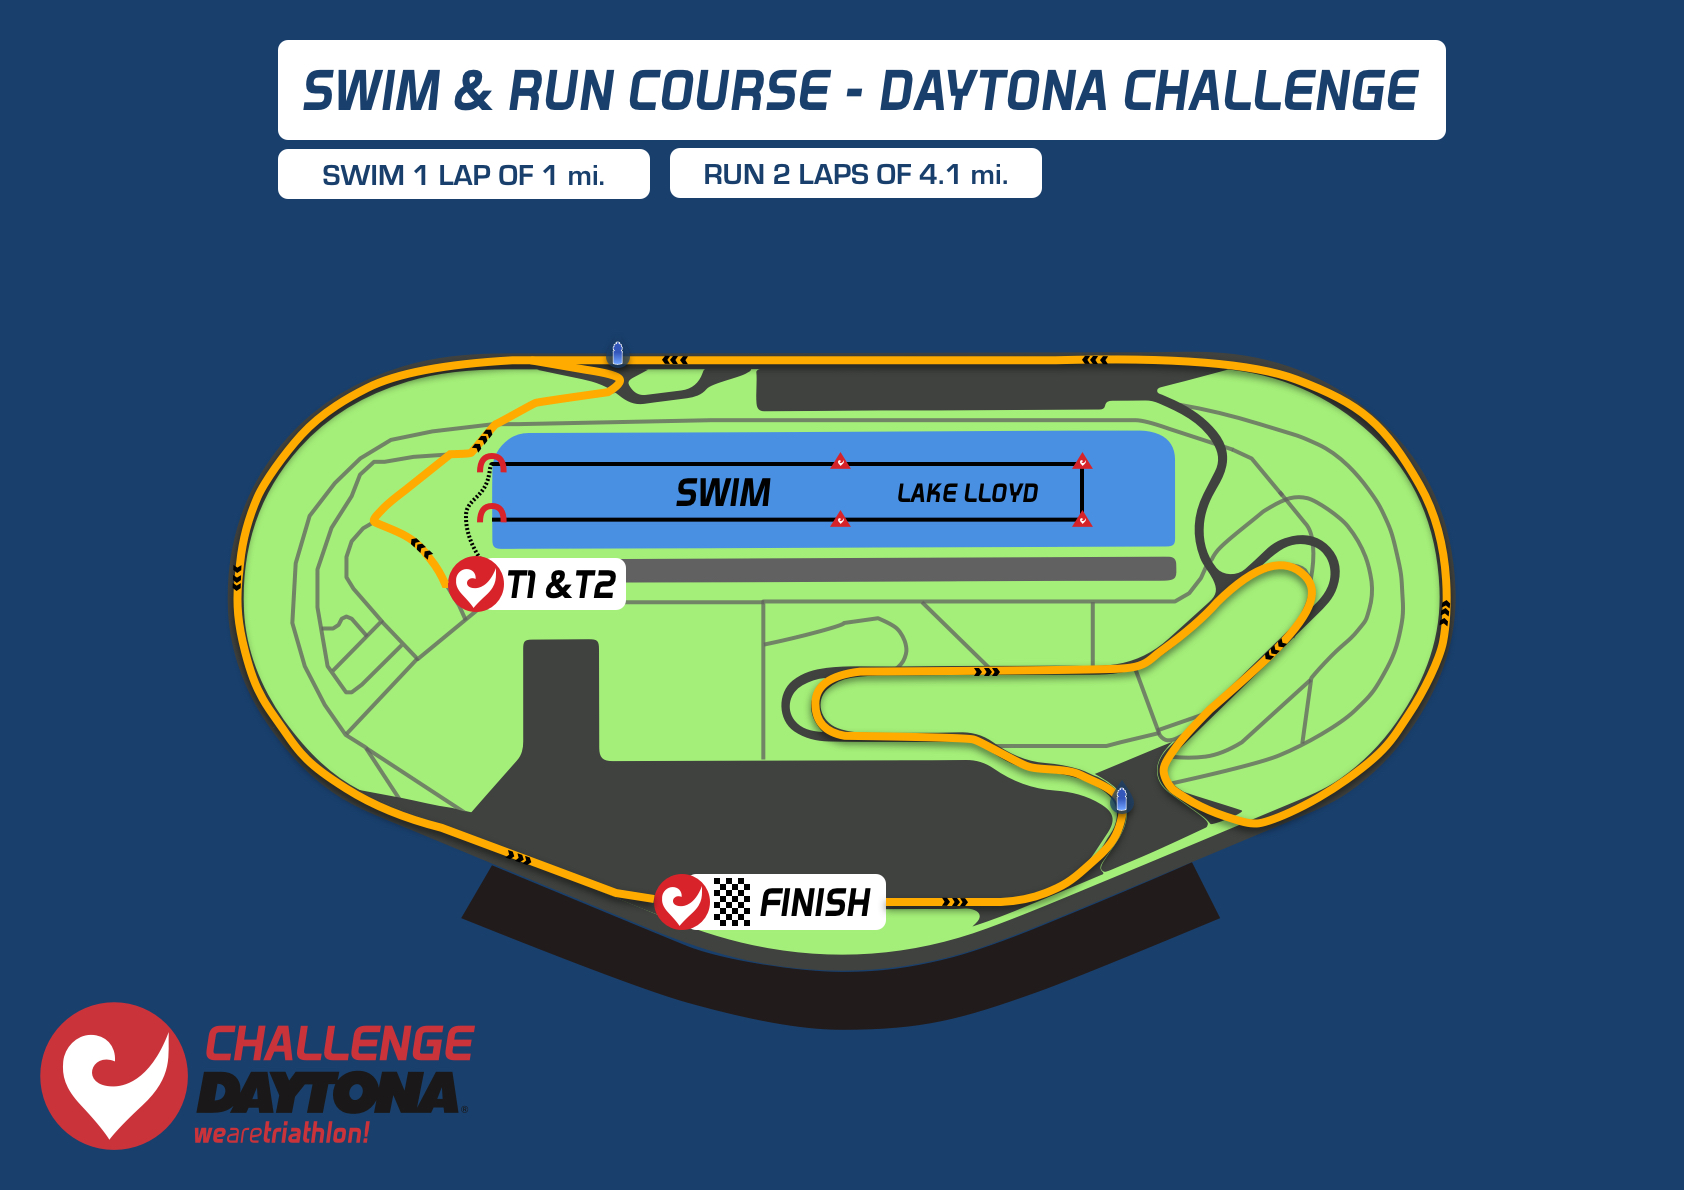 Challenge Daytona Distance PRO Athletes